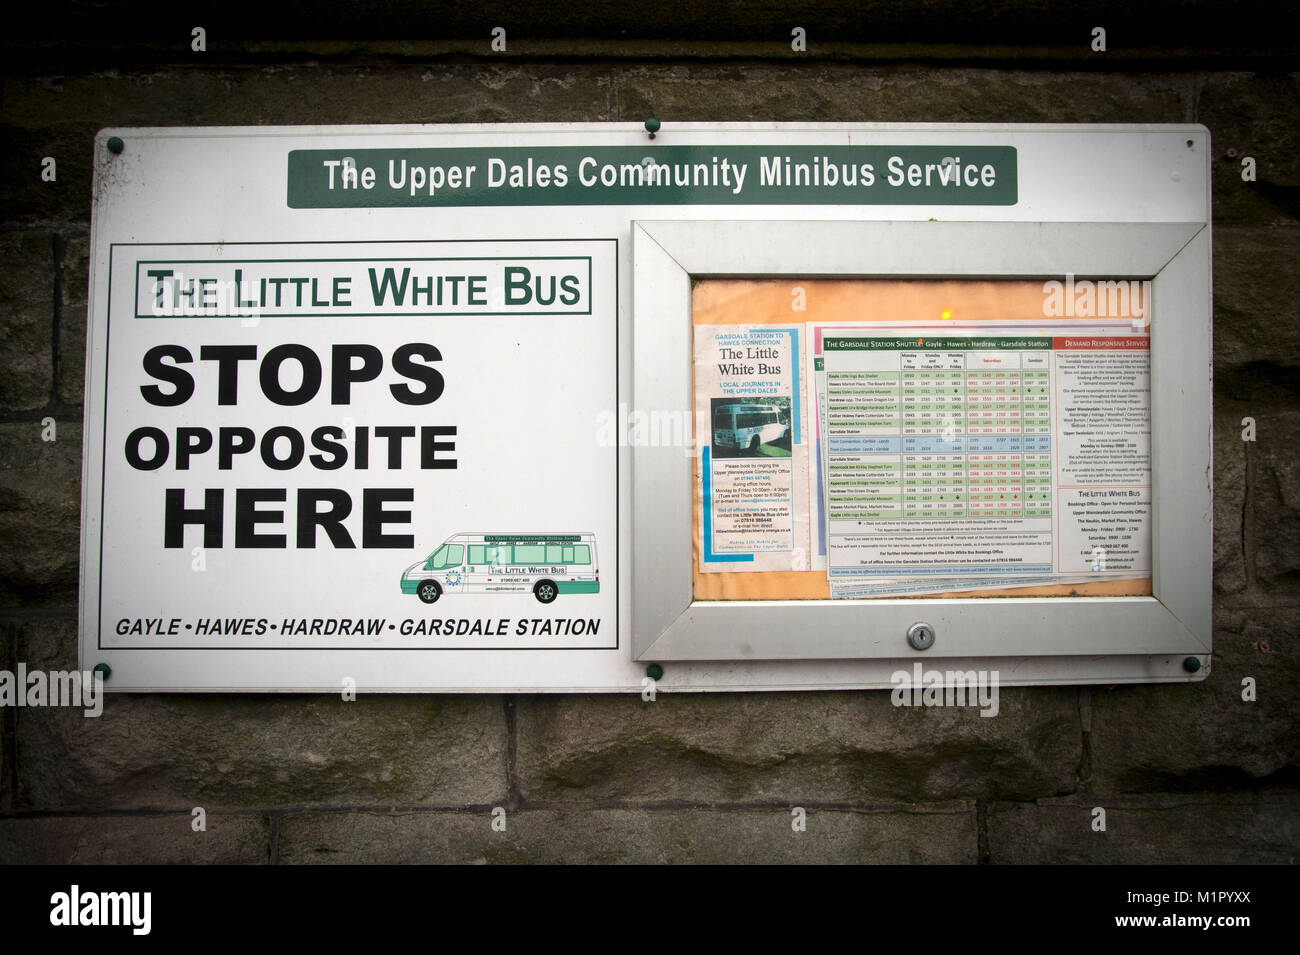 Notice in Hawes for the bus stop for The Little White Bus service. - Stock Image